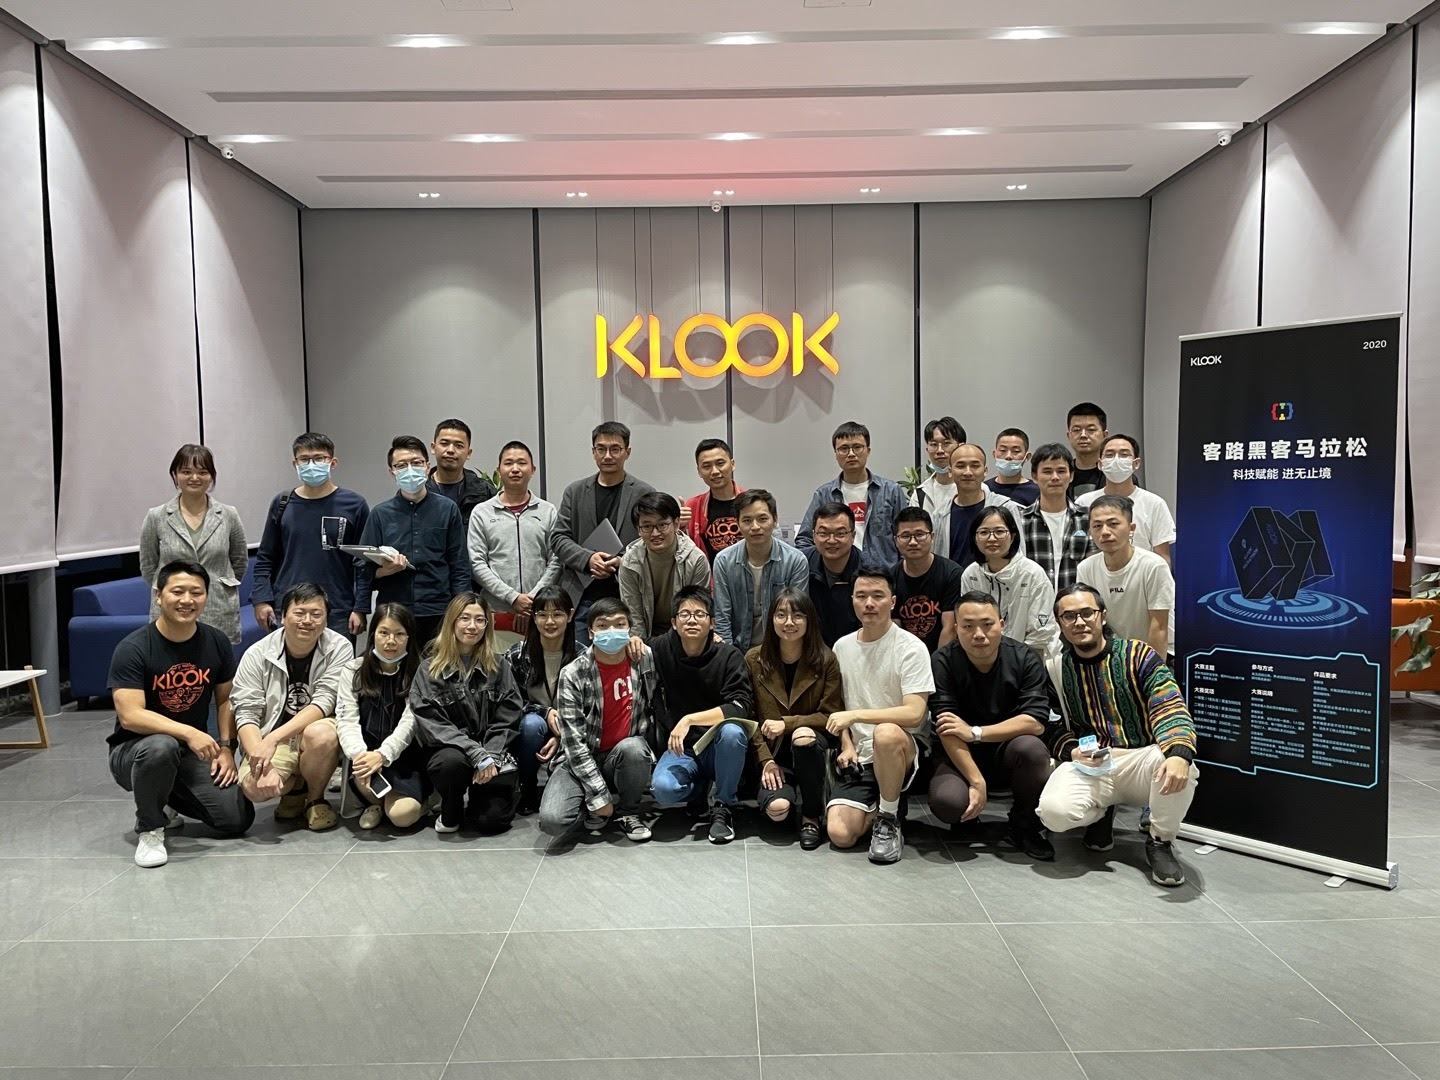 Klook Hackathon 2020: The culture at Klook is all about creativity and innovation.